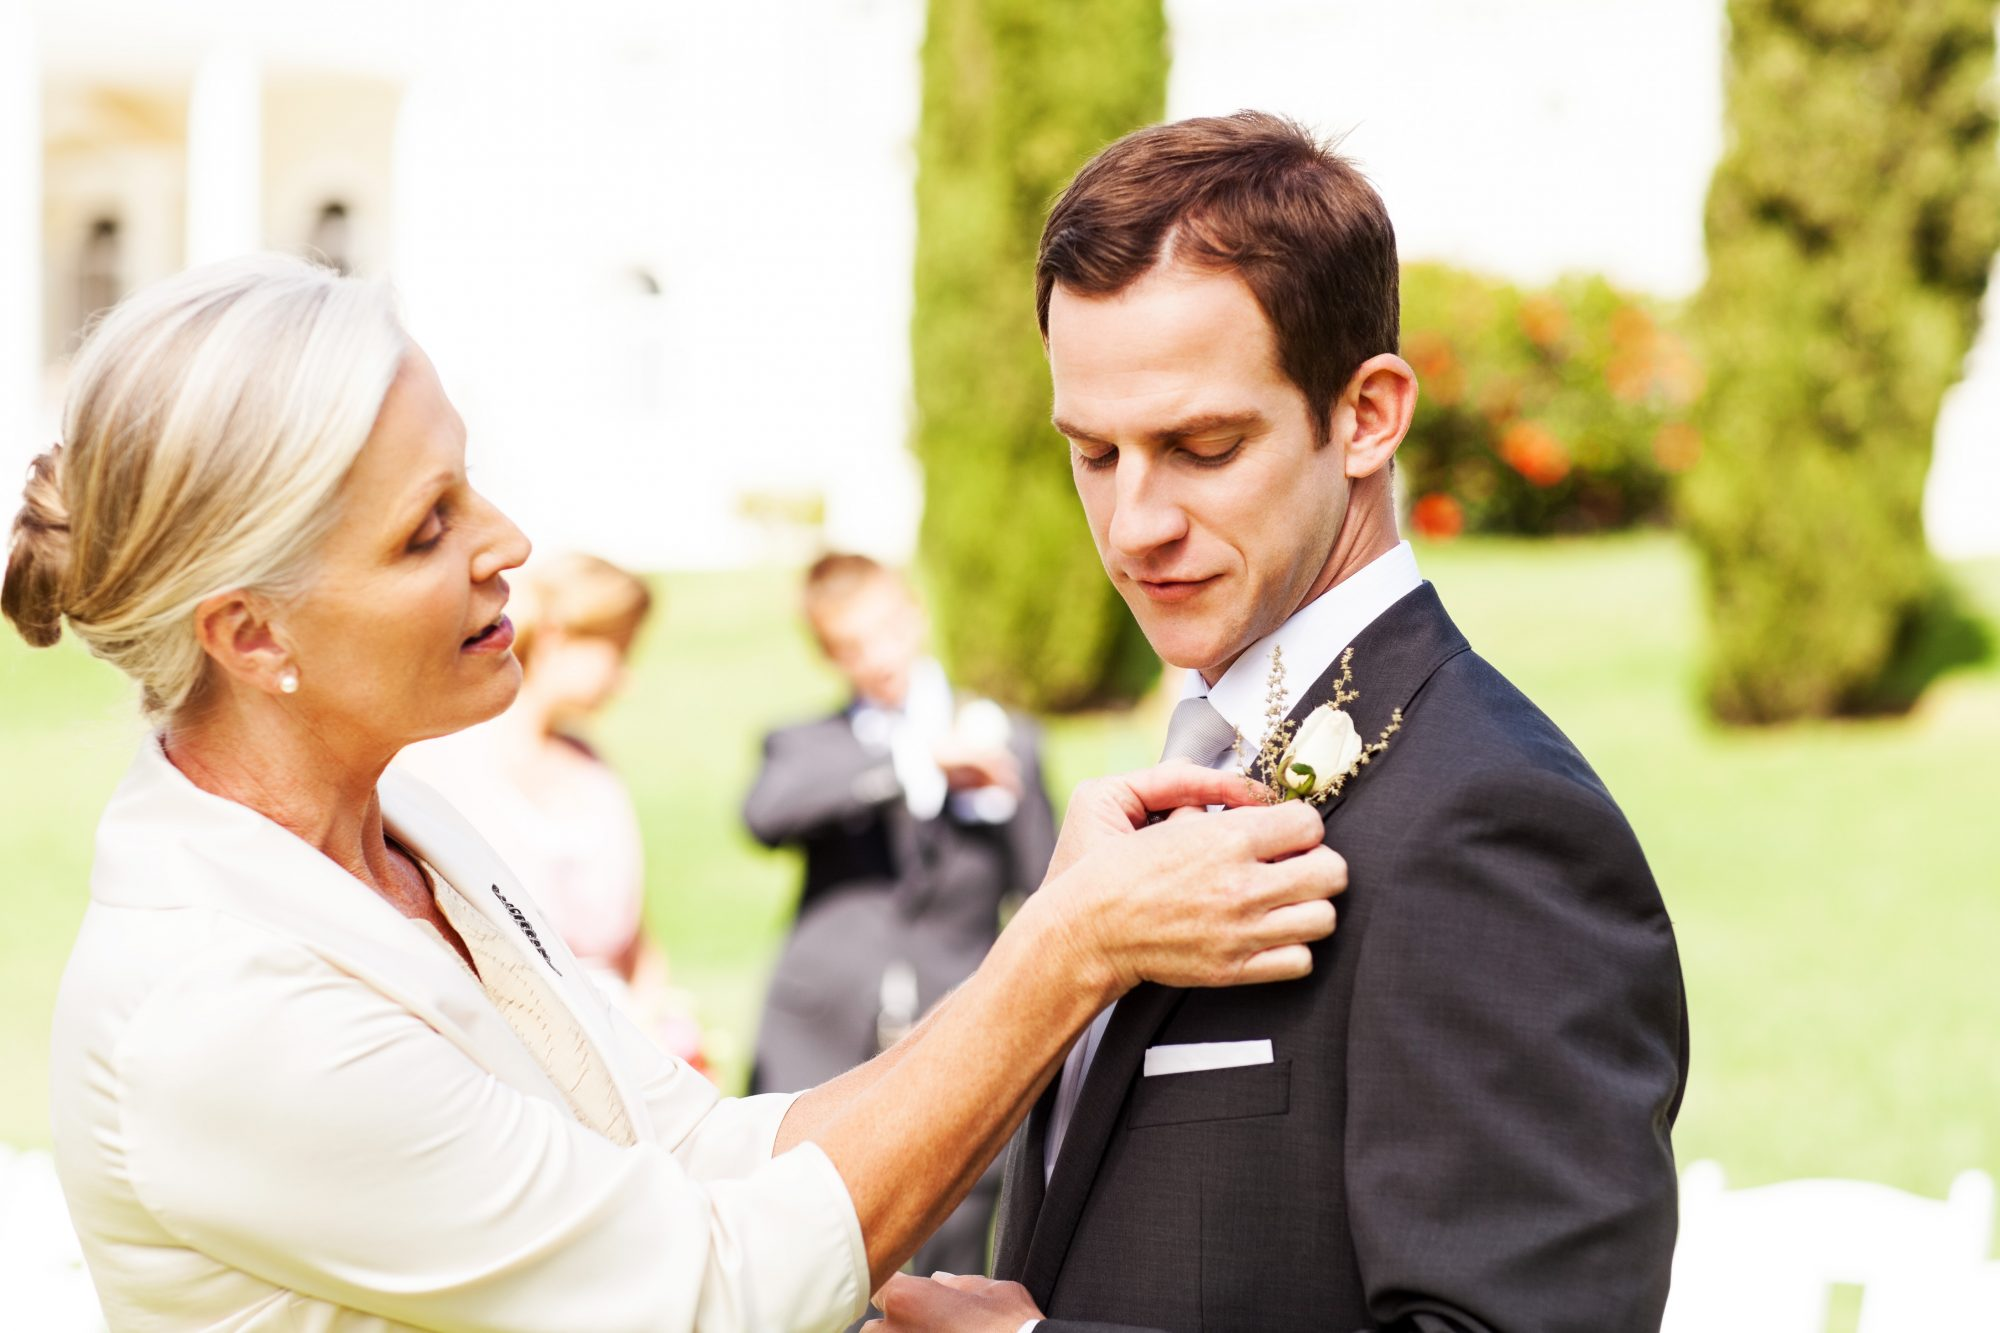 6 Mother Of The Groom Responsibilities You Need To Know